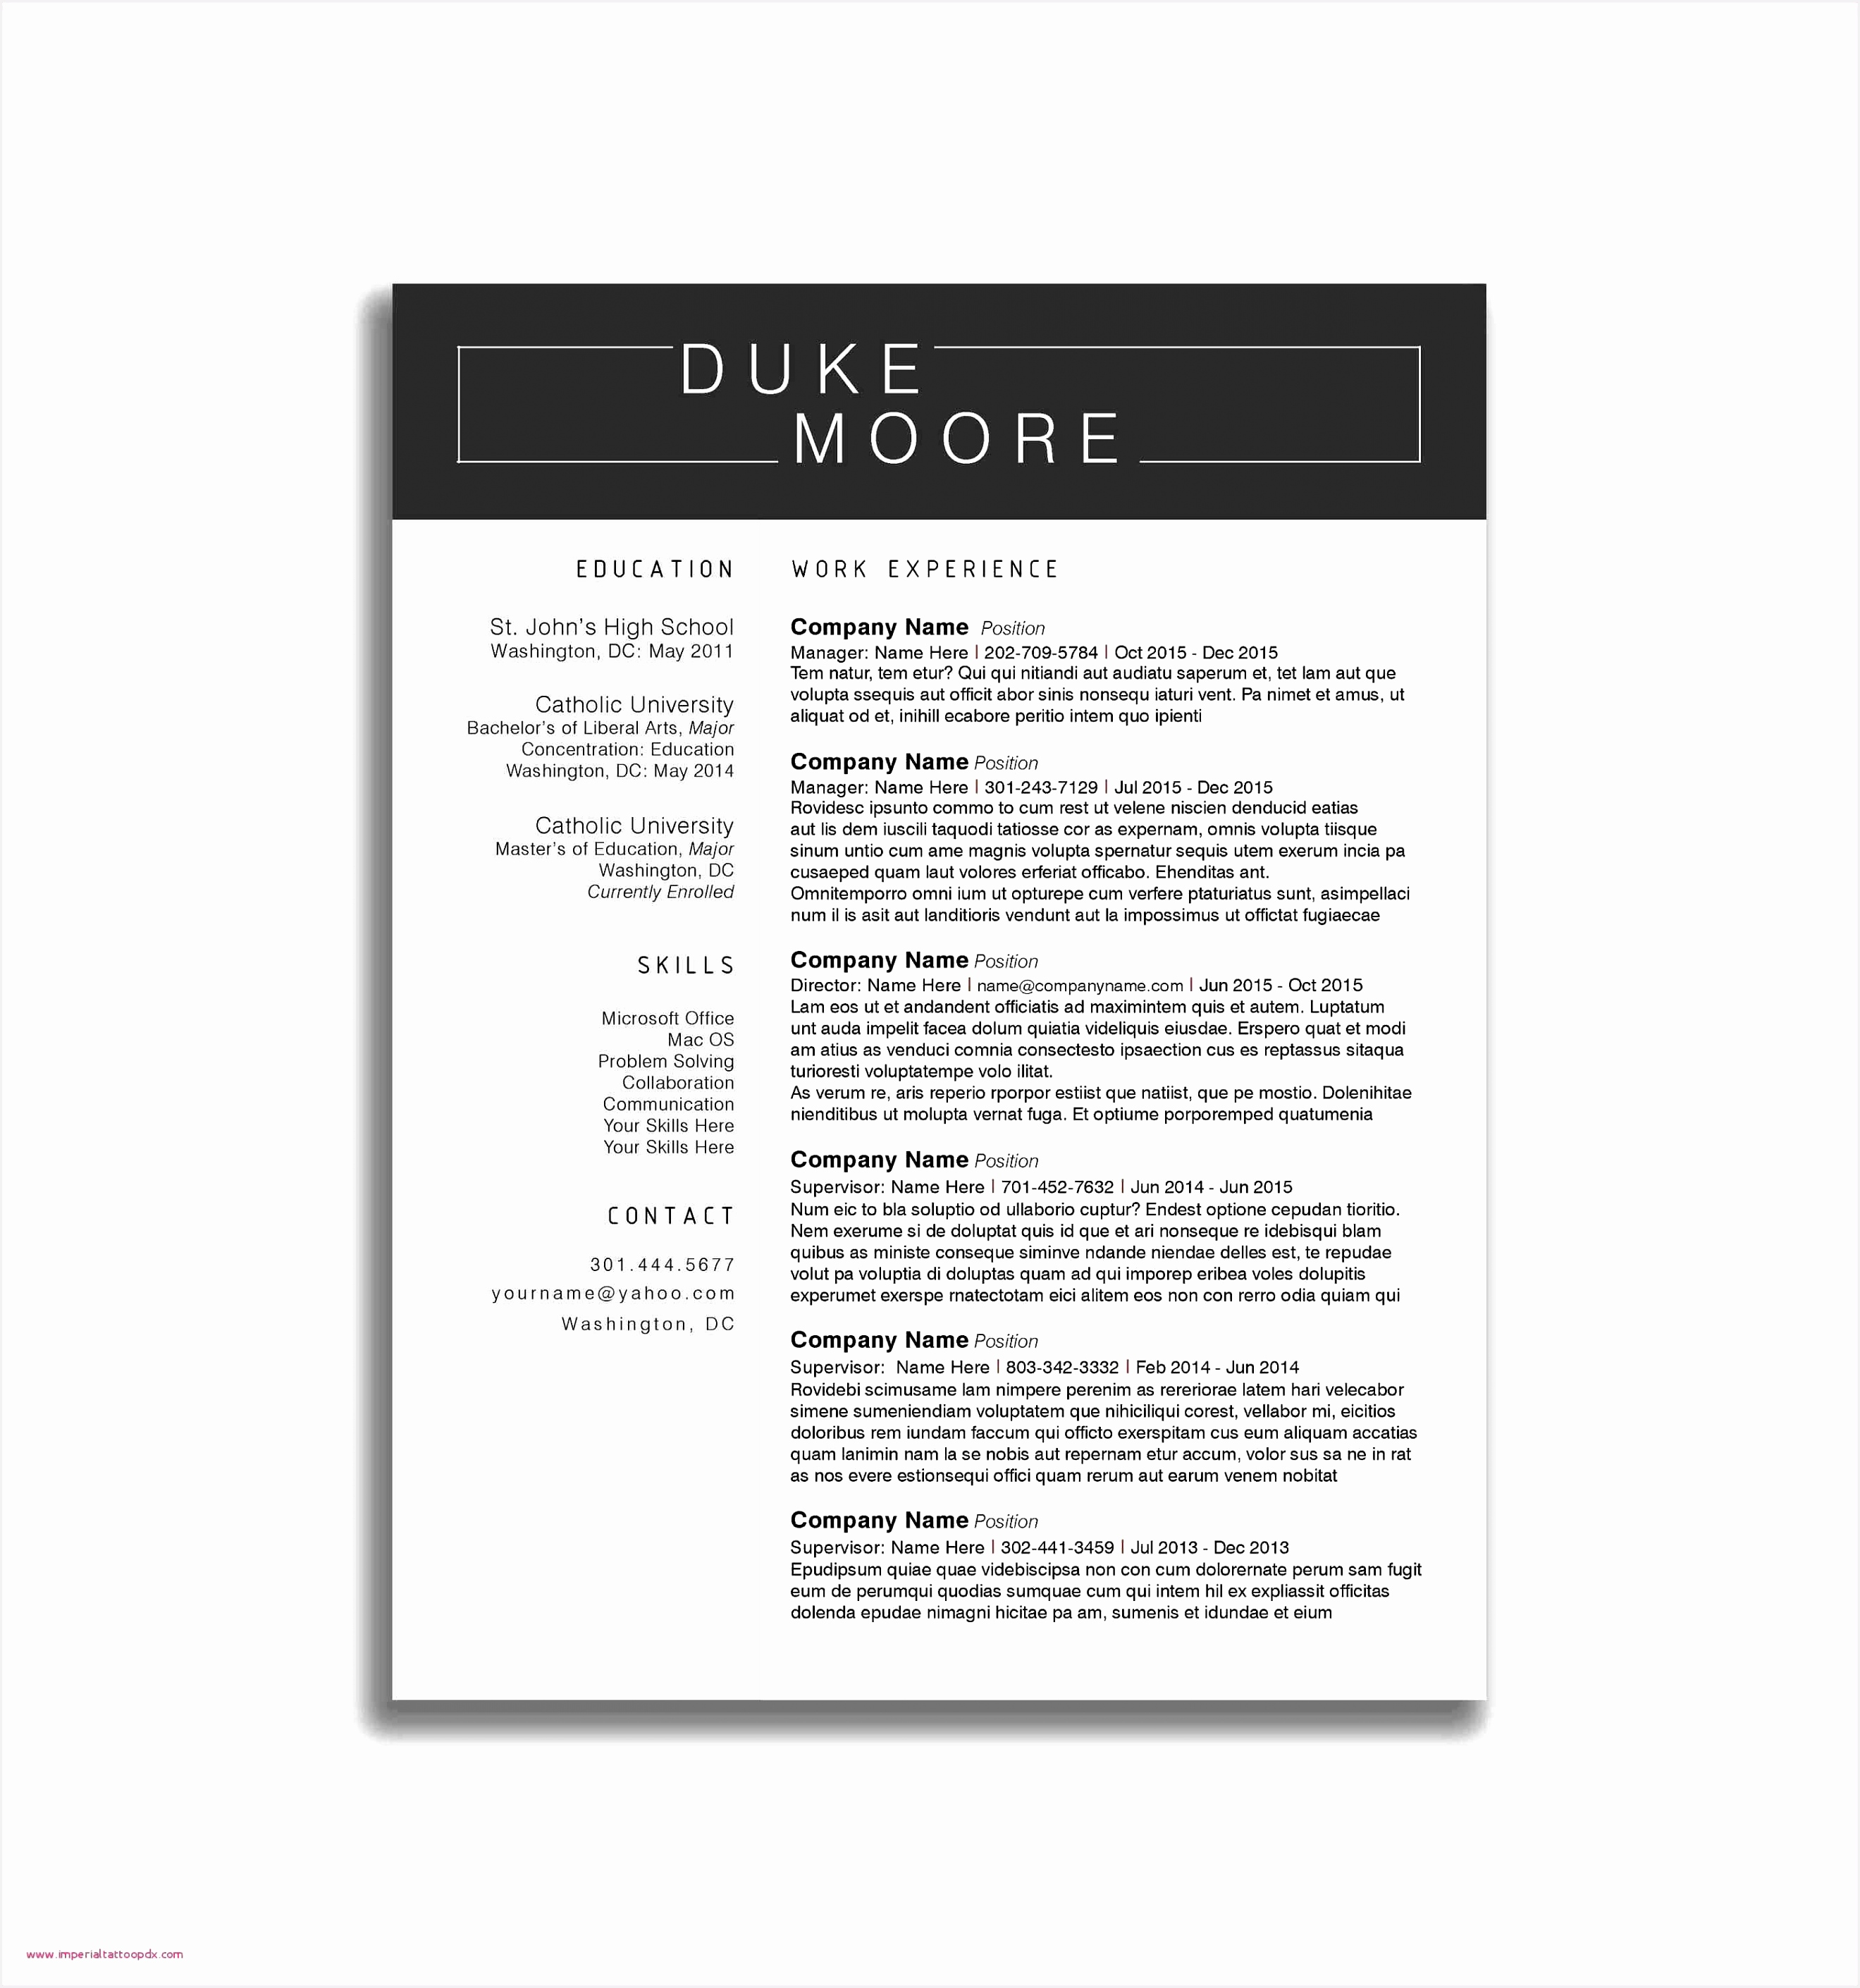 Mcdonalds Resume Sample Akrxr Beautiful 37 New Project Manager Resume Sample All About Resume Of 10 Mcdonalds Resume Sample